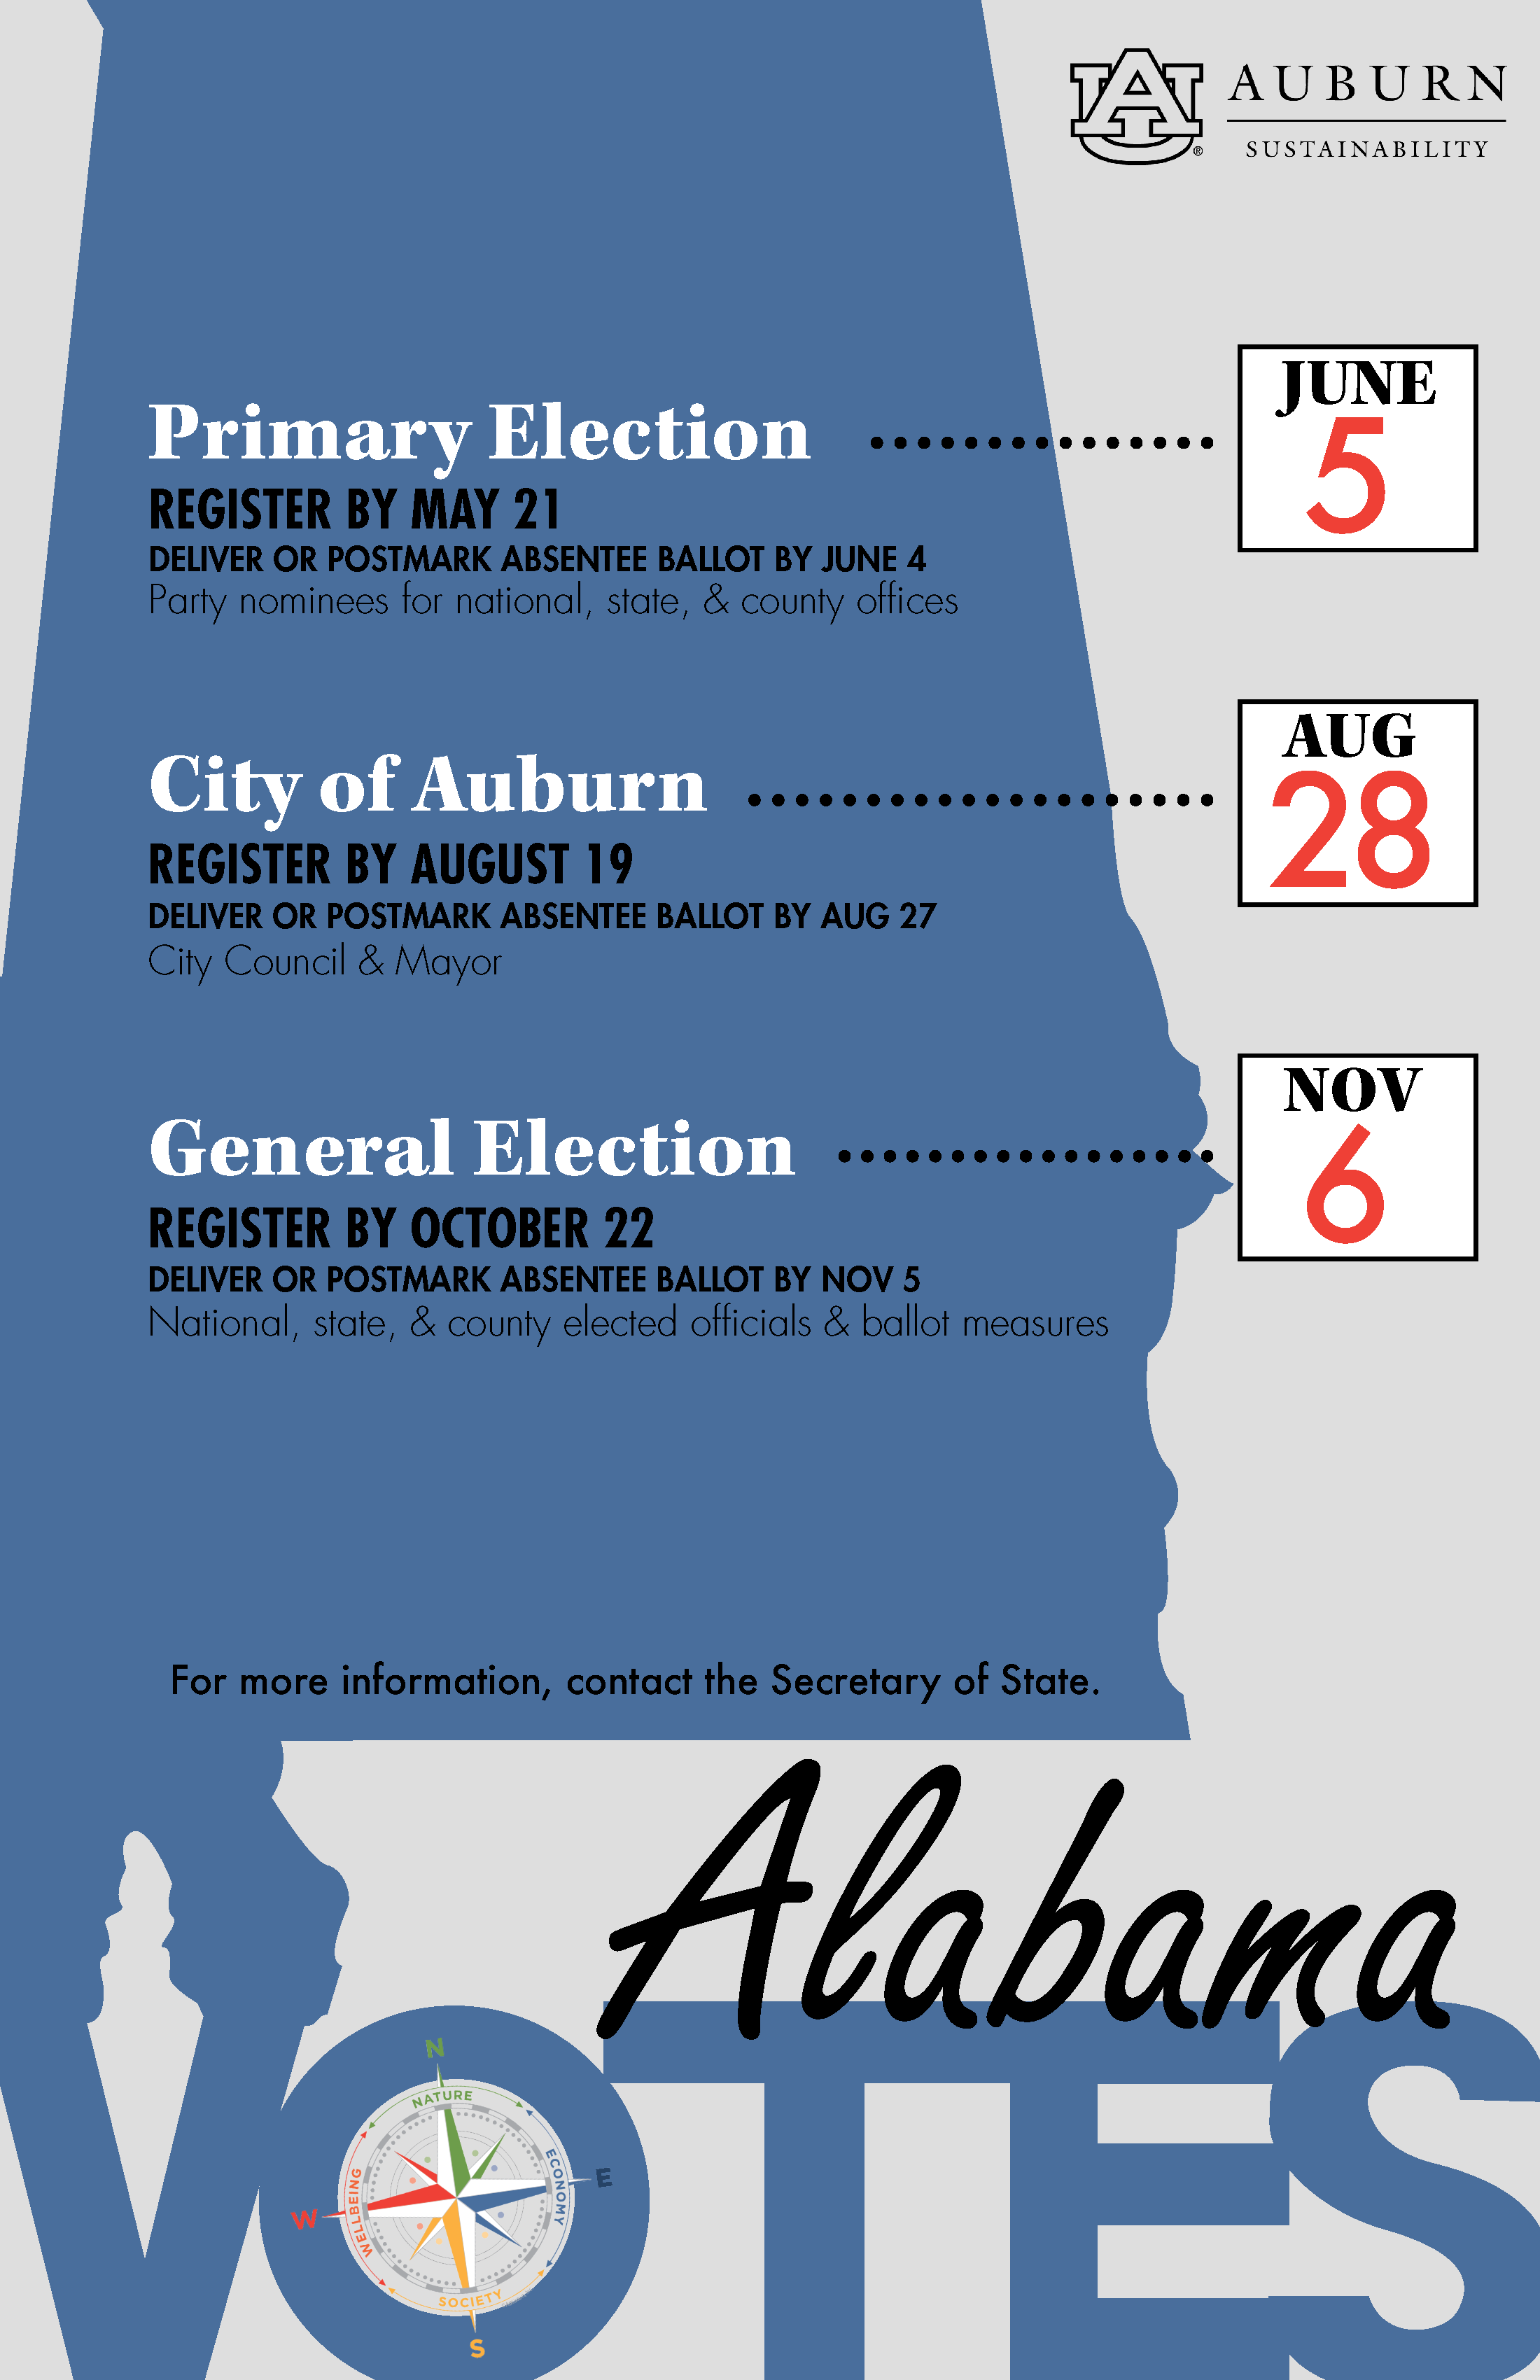 Image of Poster with Alabama 2018 Voting Dates